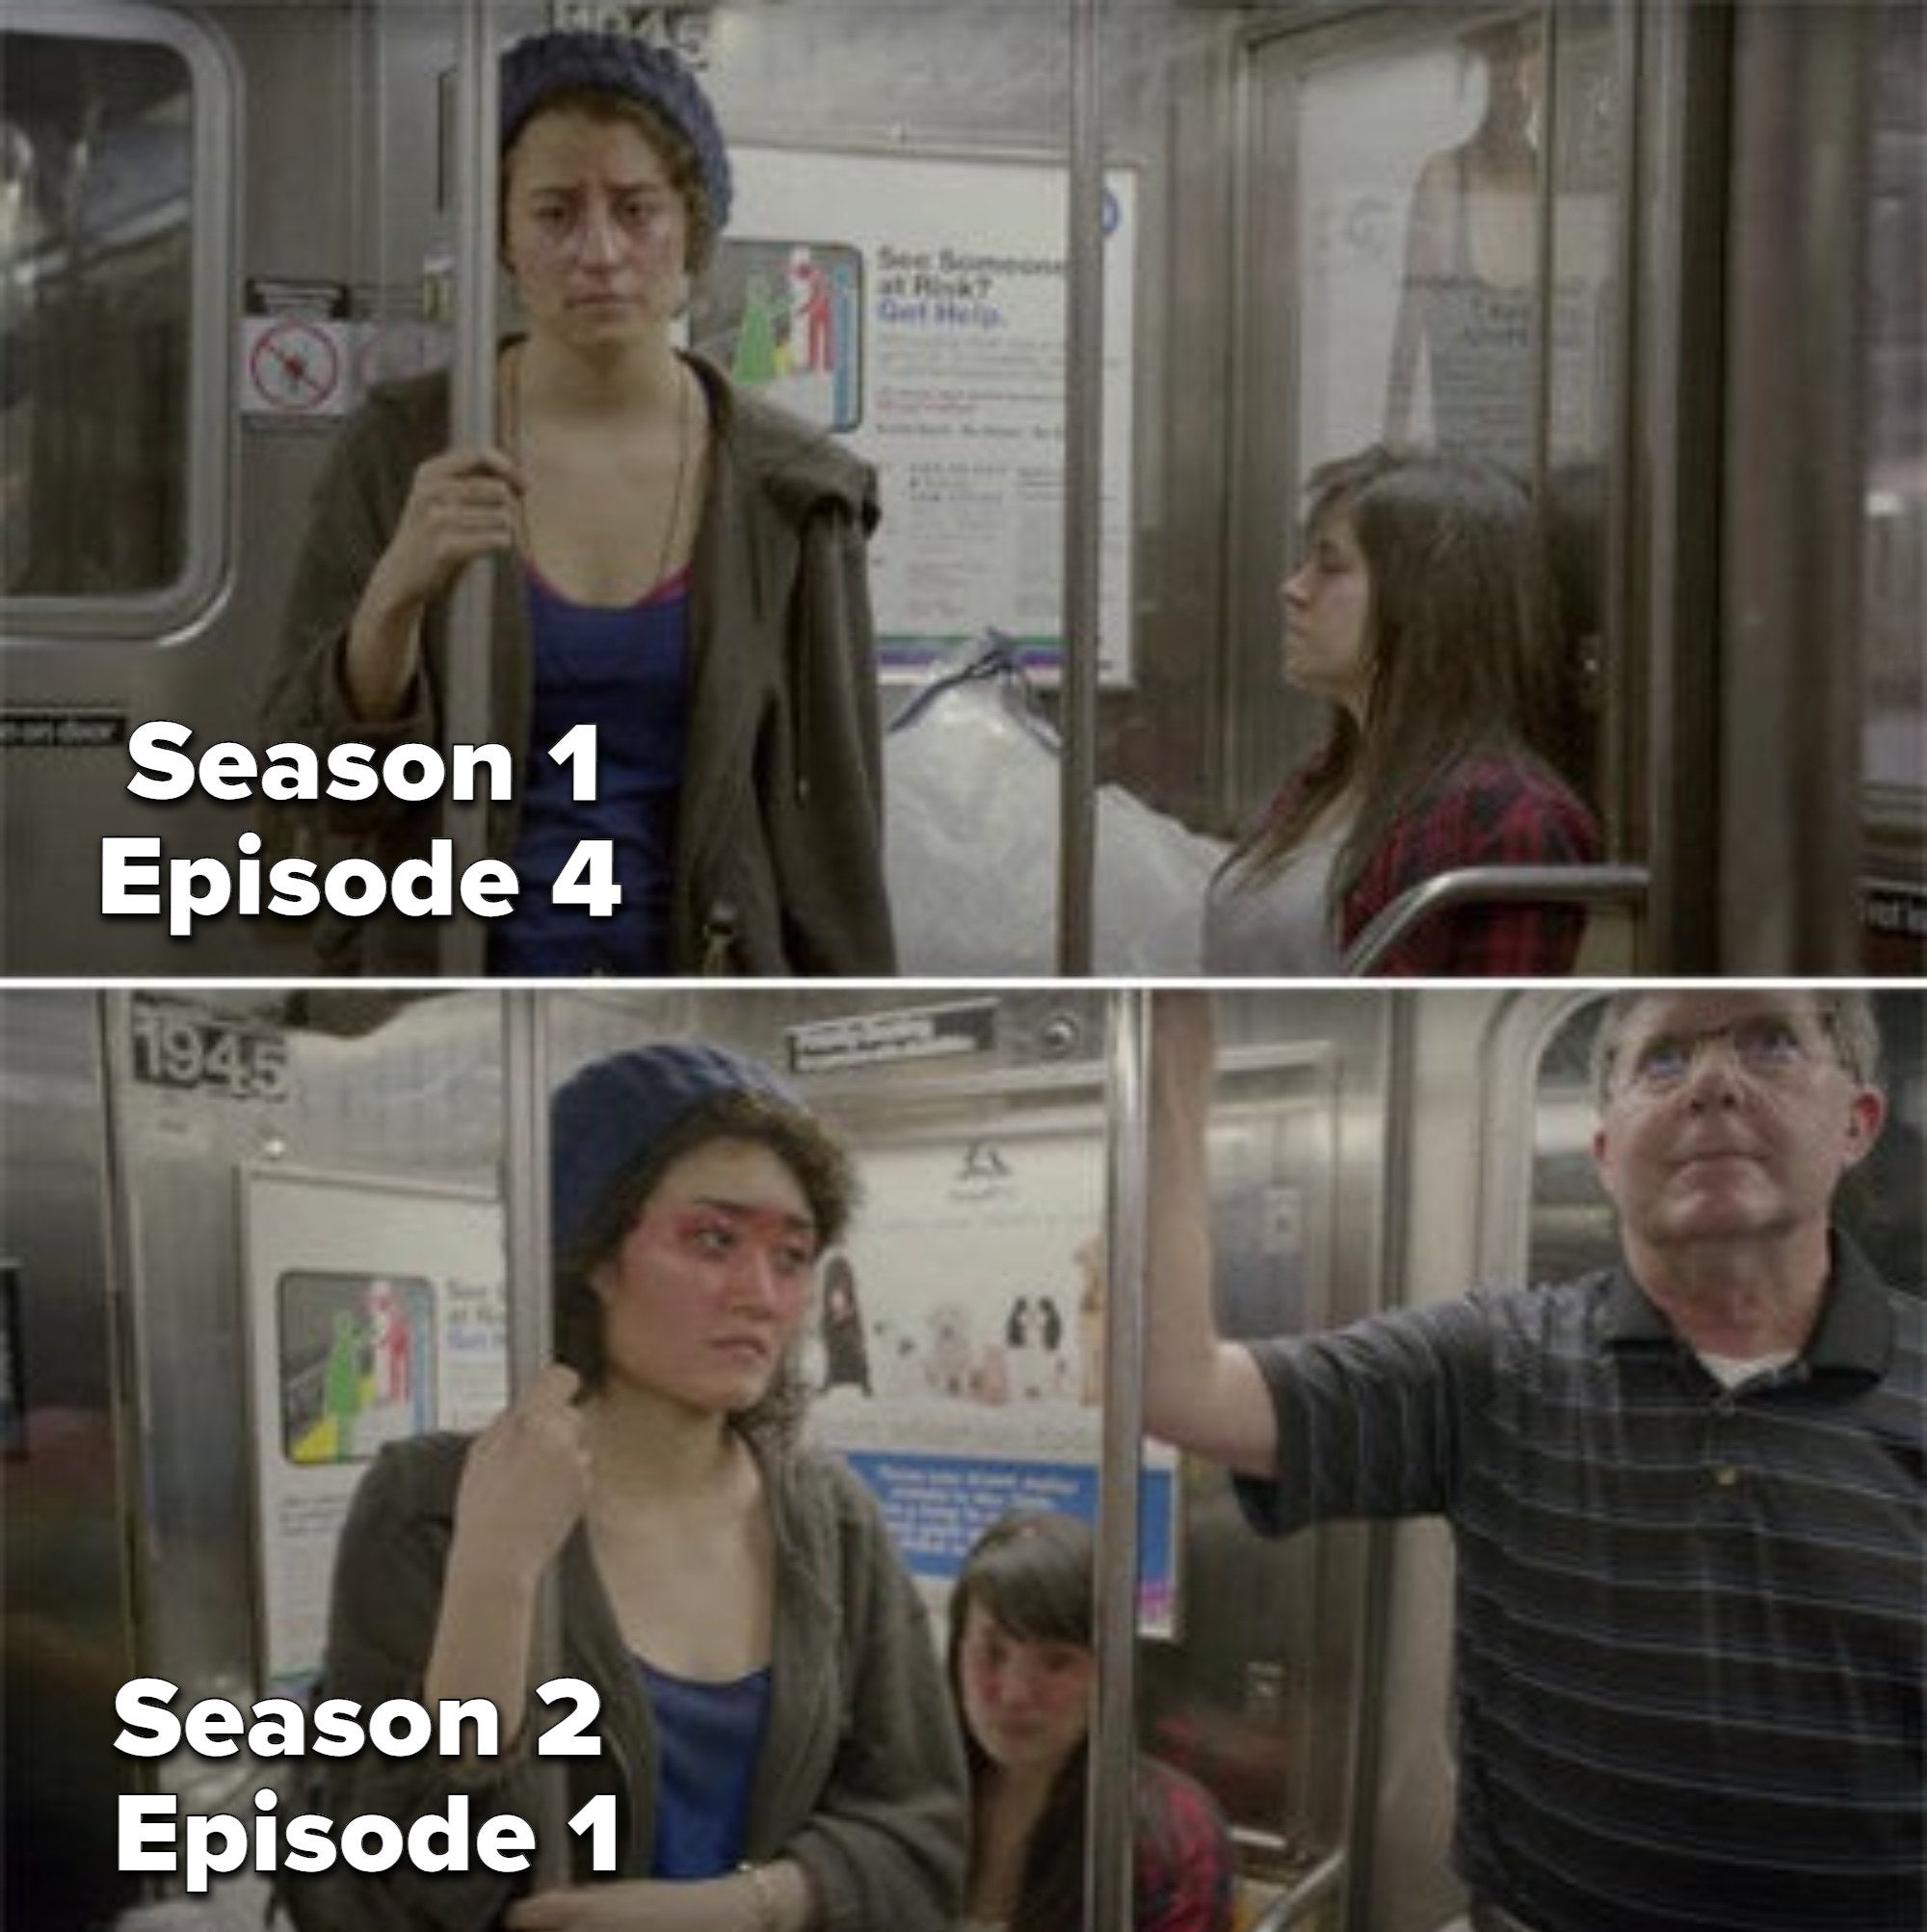 Abbi and Ilana riding the subway in Season 1 and Two girls wearing the exact same thing in Season 2 on the subway